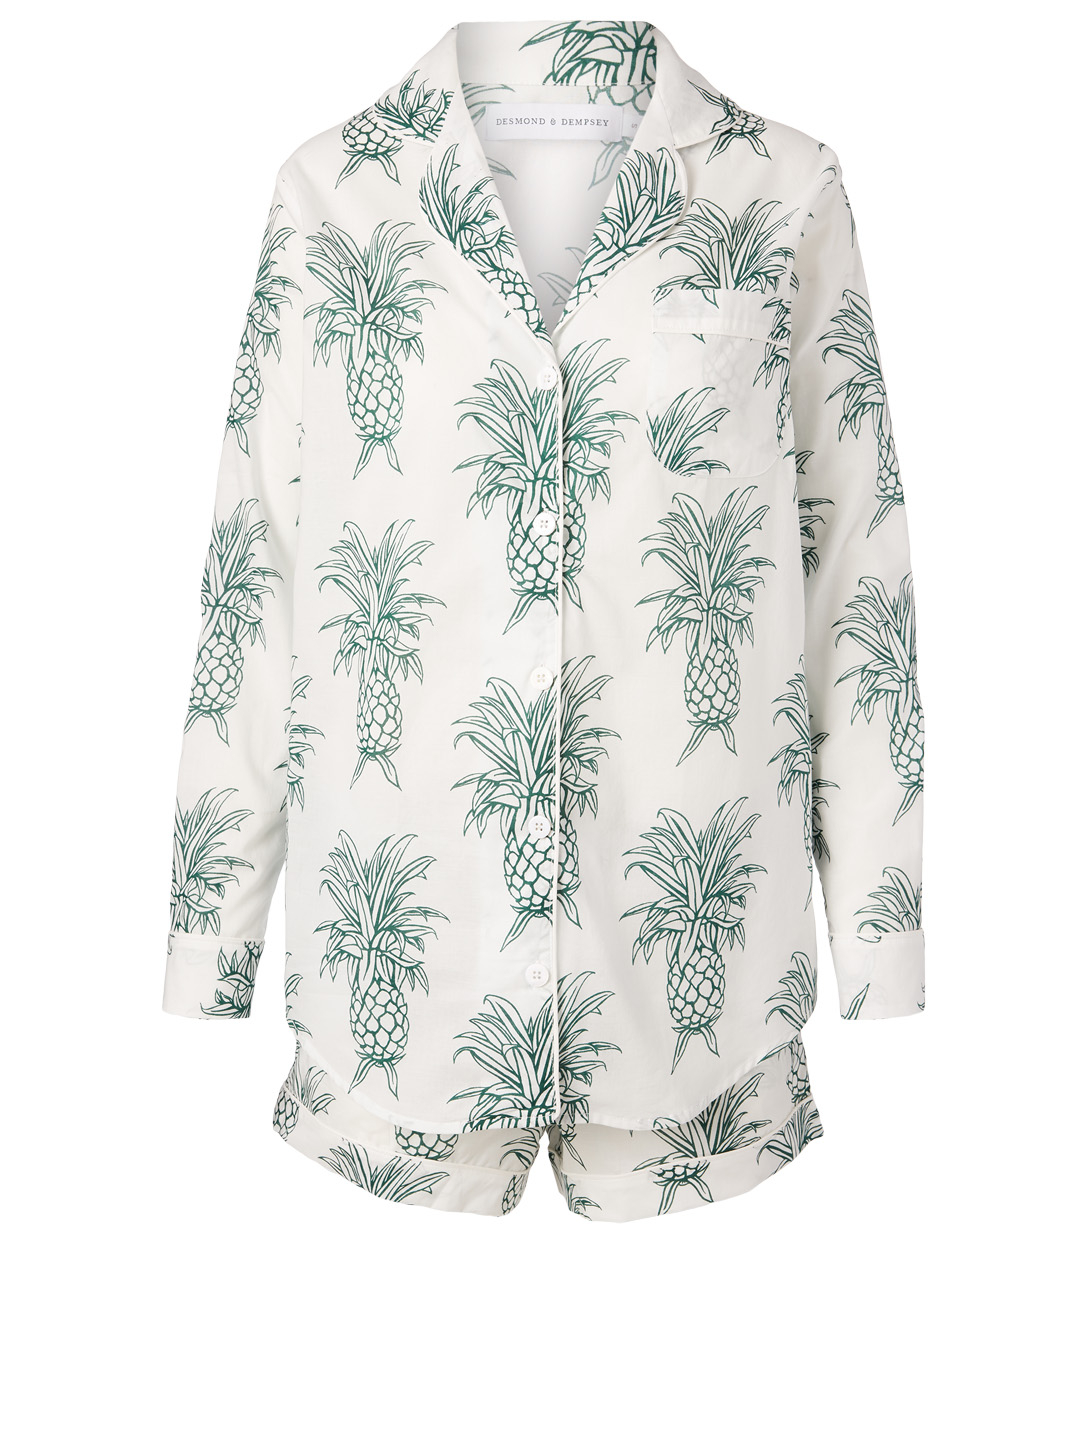 DESMOND & DEMPSEY Howie Pineapple Short Pajama Set H Project White